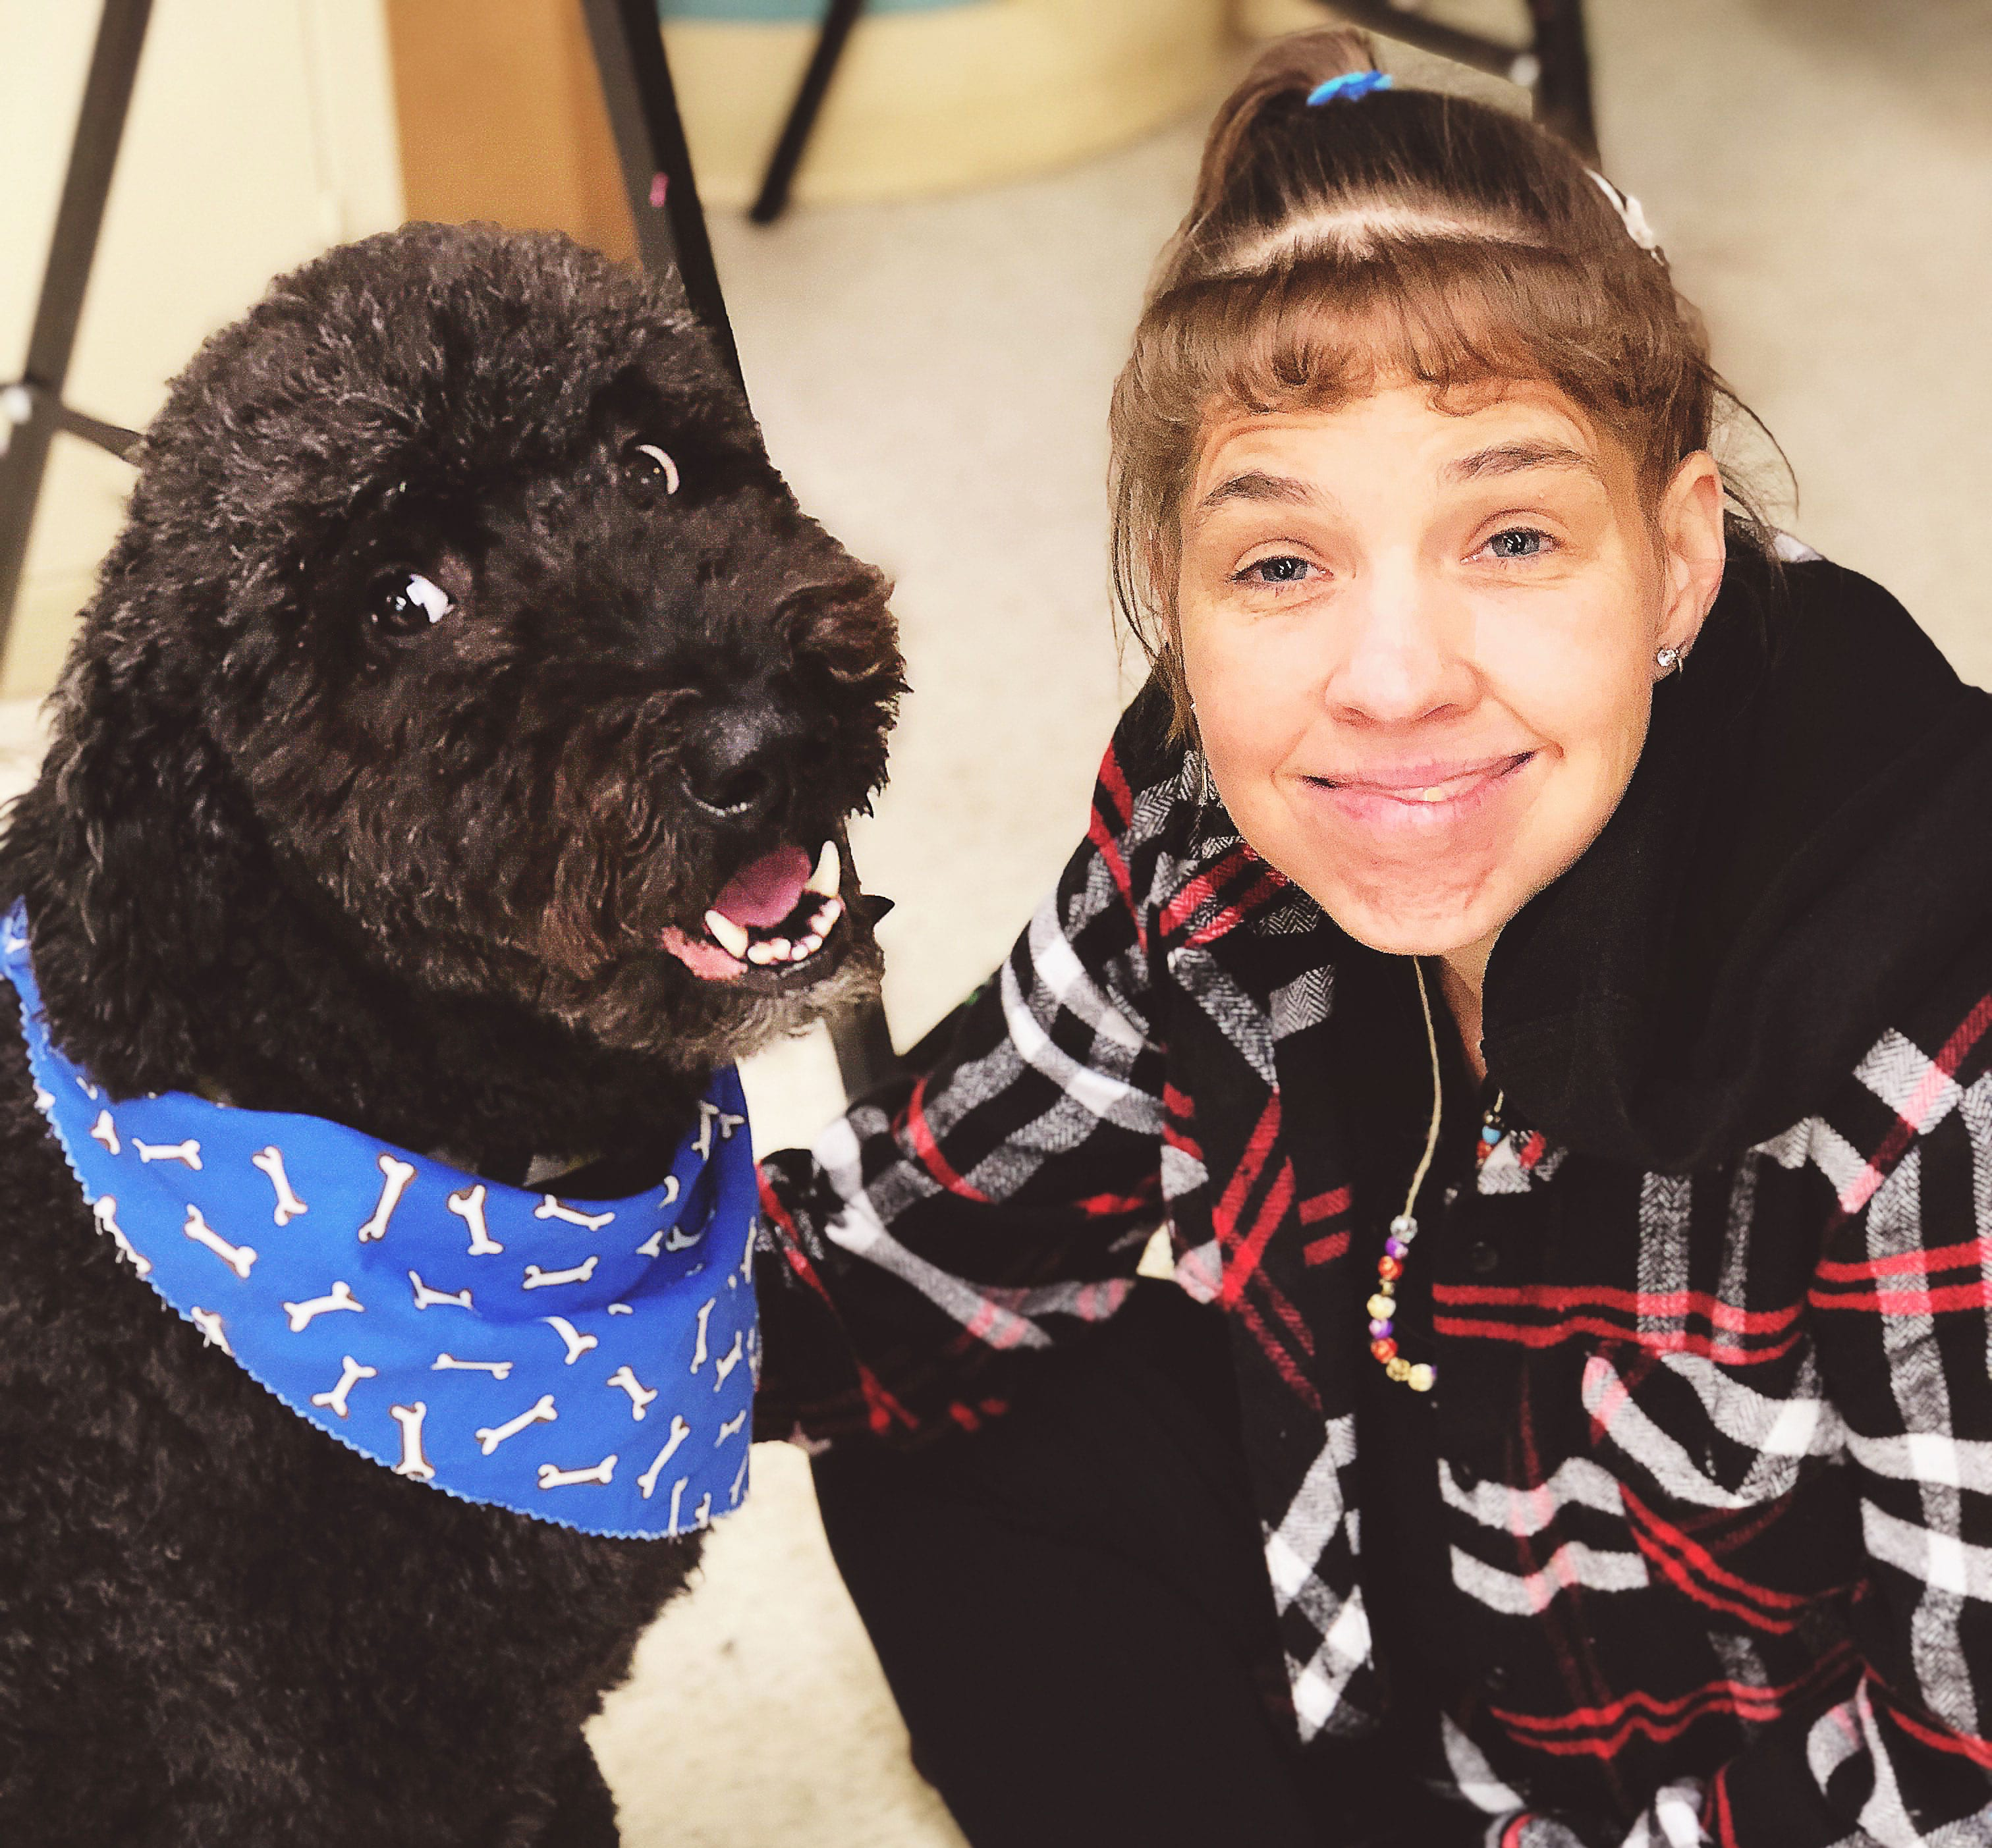 Female client smiling is kneeling down and face to face petting a happy and gentle looking black dog with a blue bandana that is part of the pet therapy program.